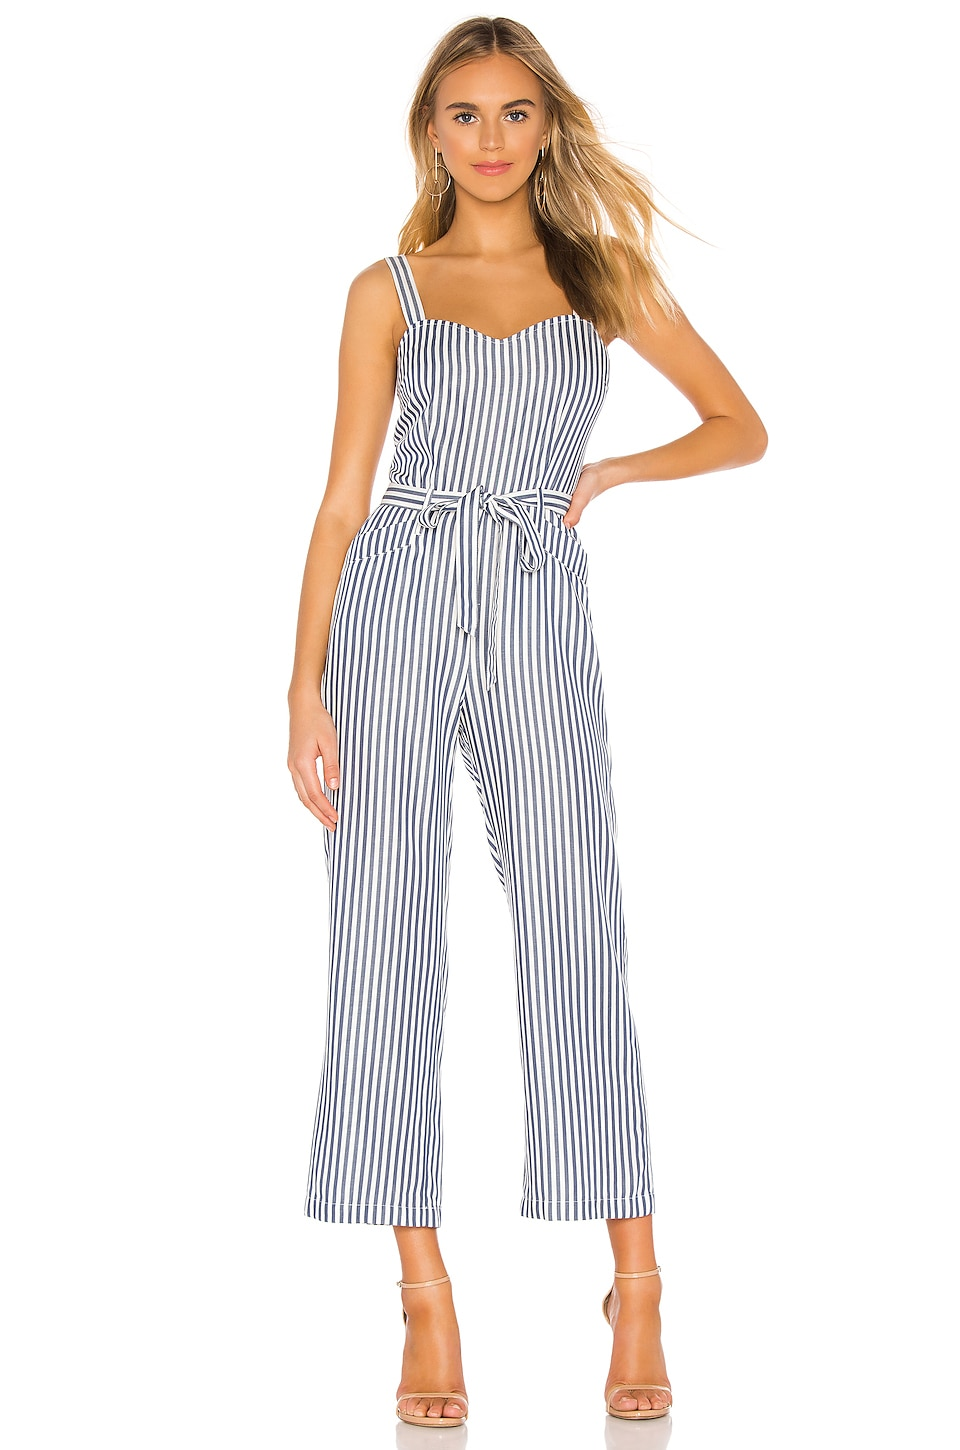 PAIGE Emma Jumpsuit in White & Navy